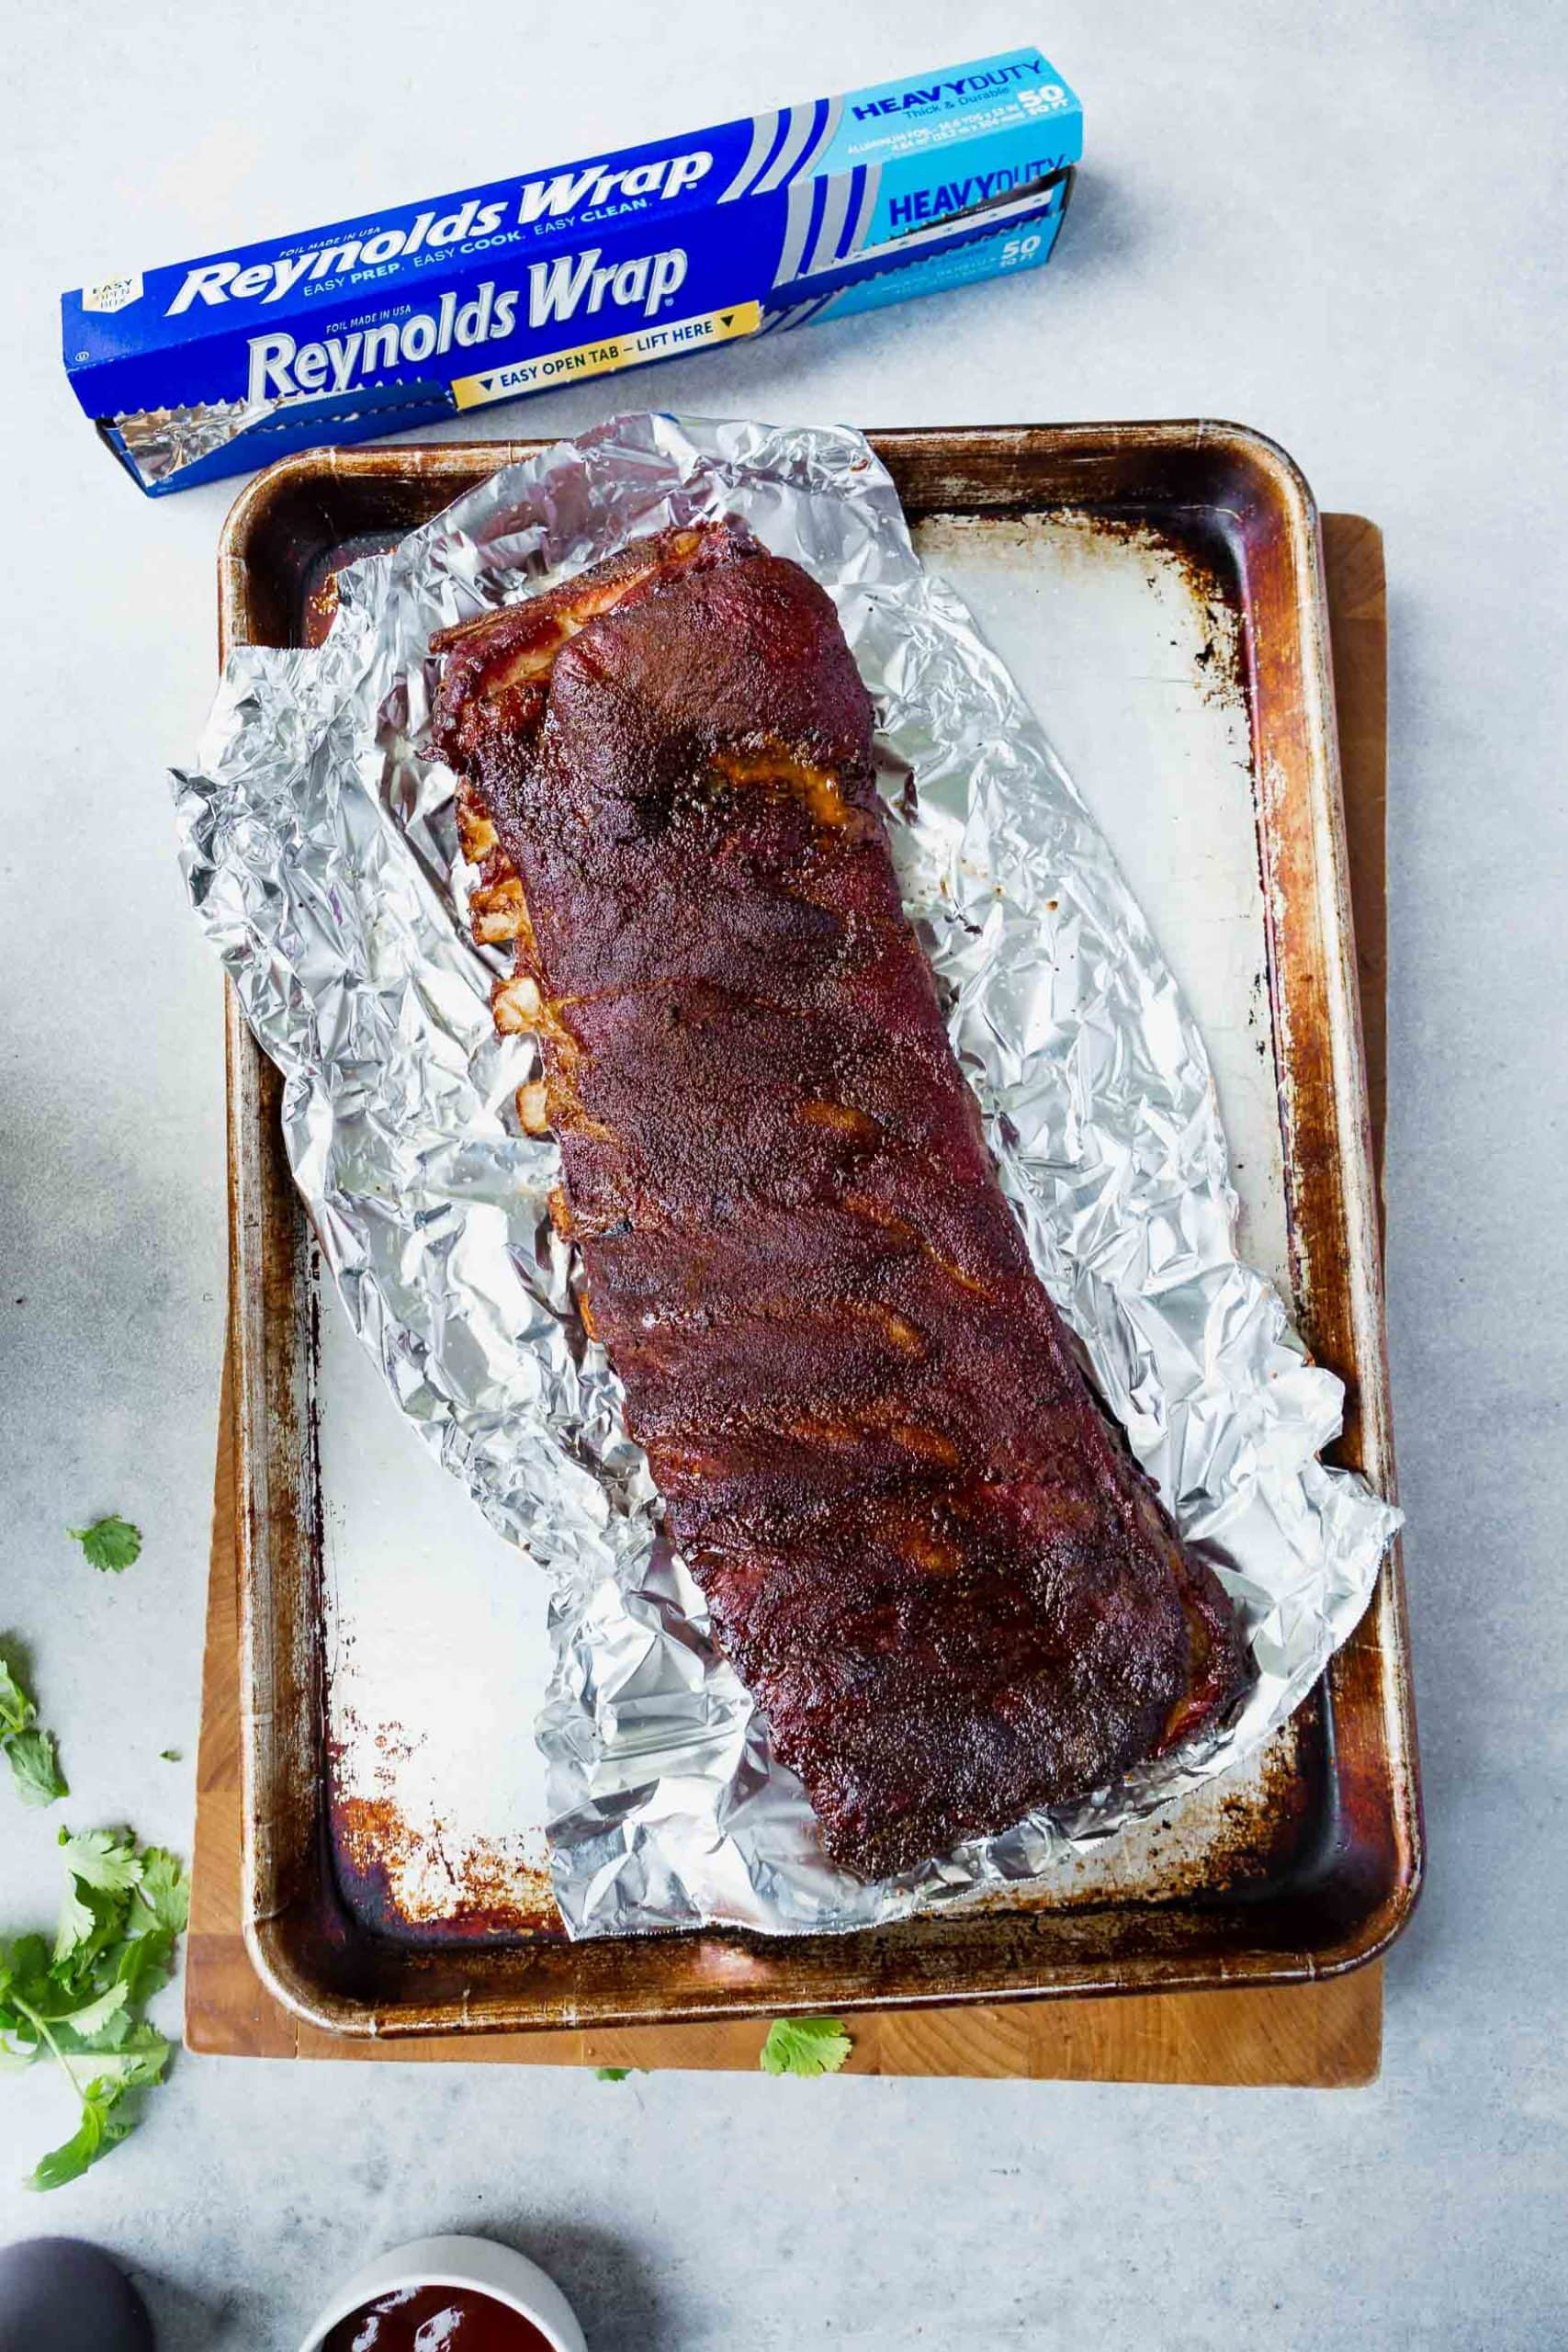 a photo of a grilled rack of ribs sitting on a sheet of foil on top of a baking sheet.